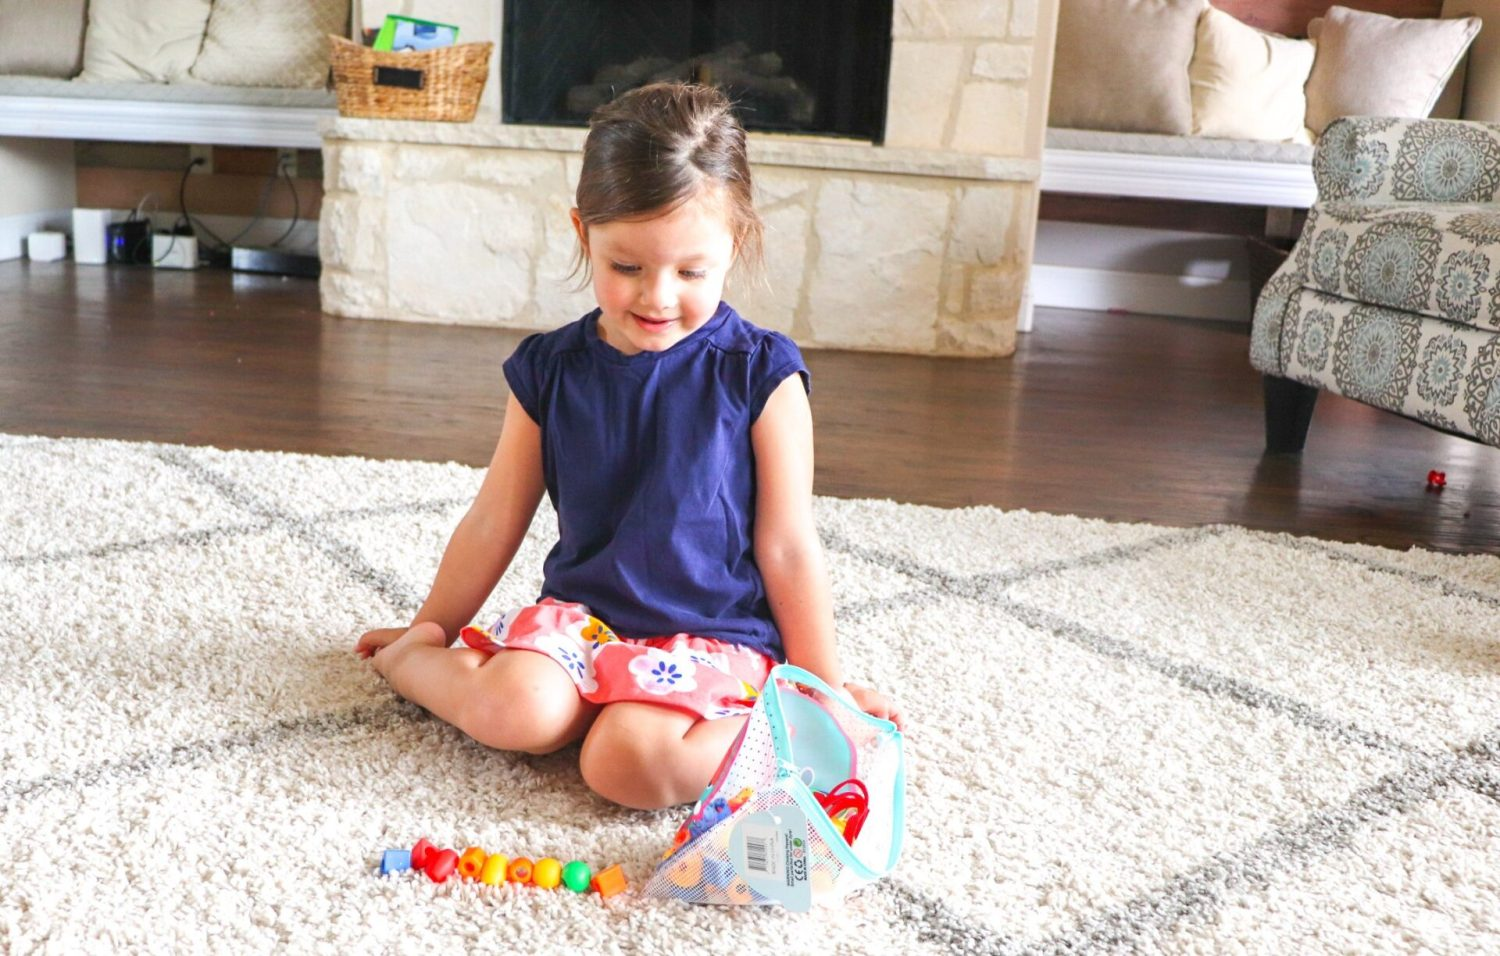 Are you drowning in trying to keep the house clean with kids? Well, we have 7 simple tips on how to keep a house tidy with toddlers that you can do today!